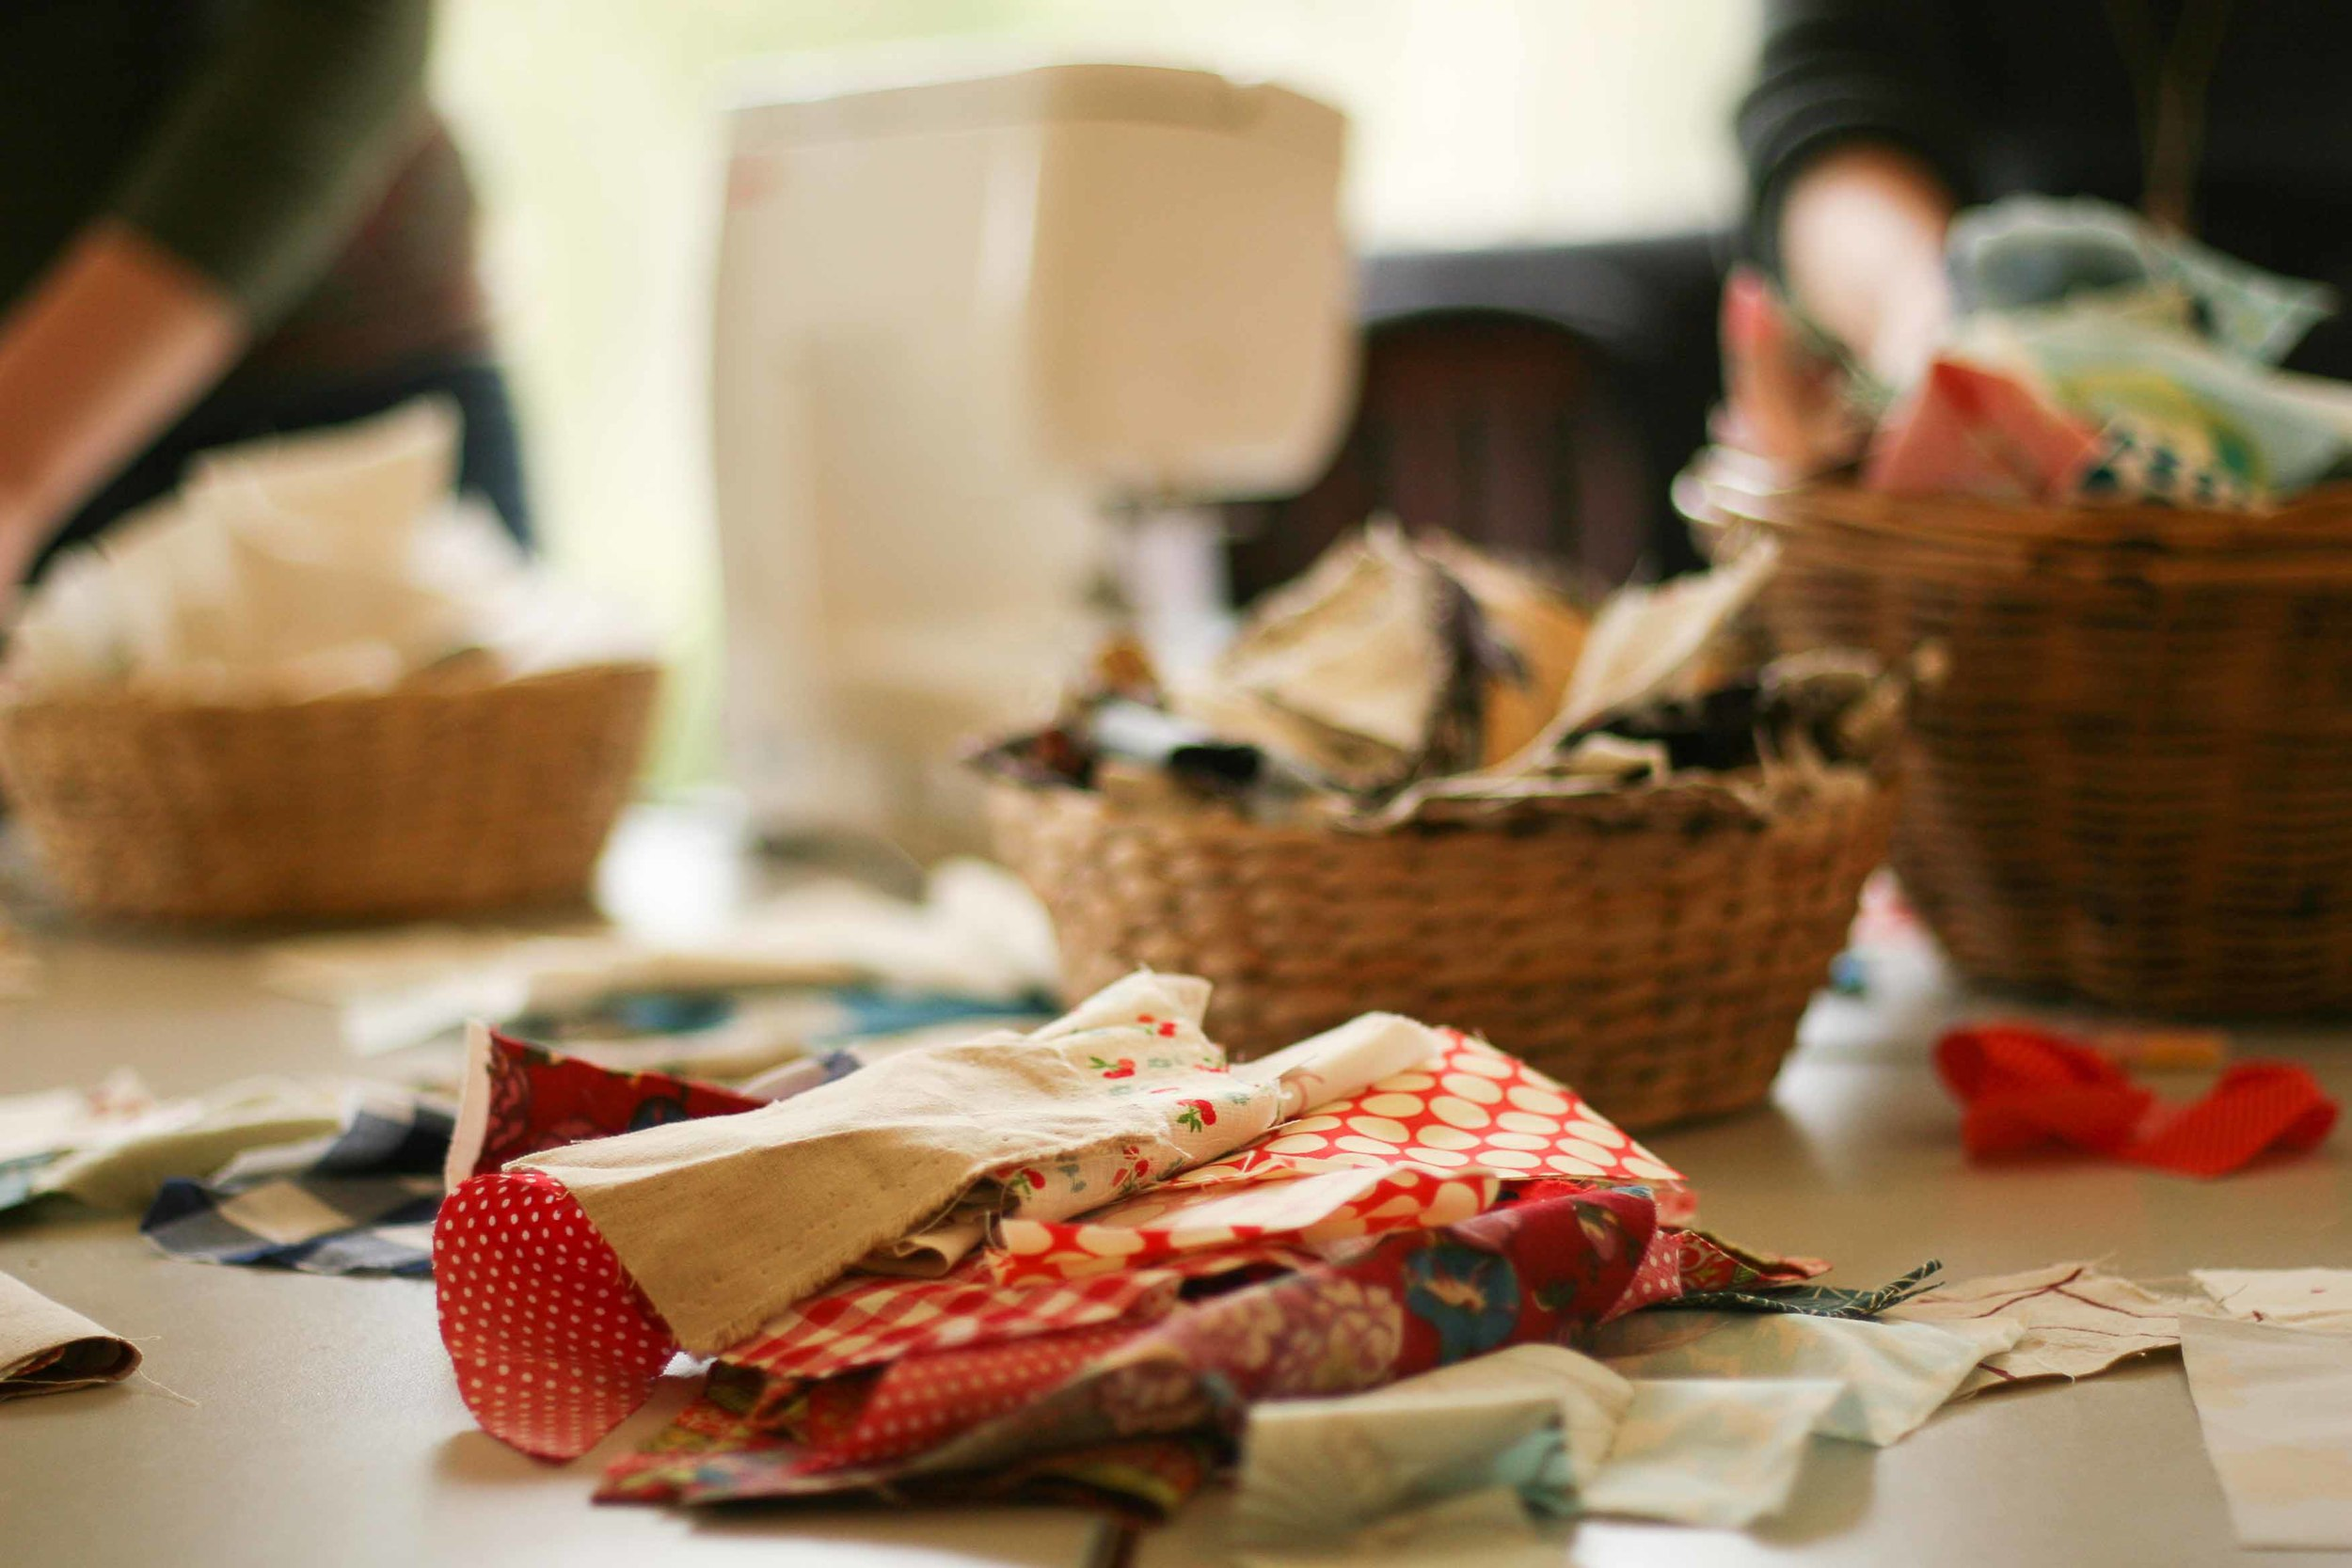 Leslie brought baskets of scraps to use - so much joy!